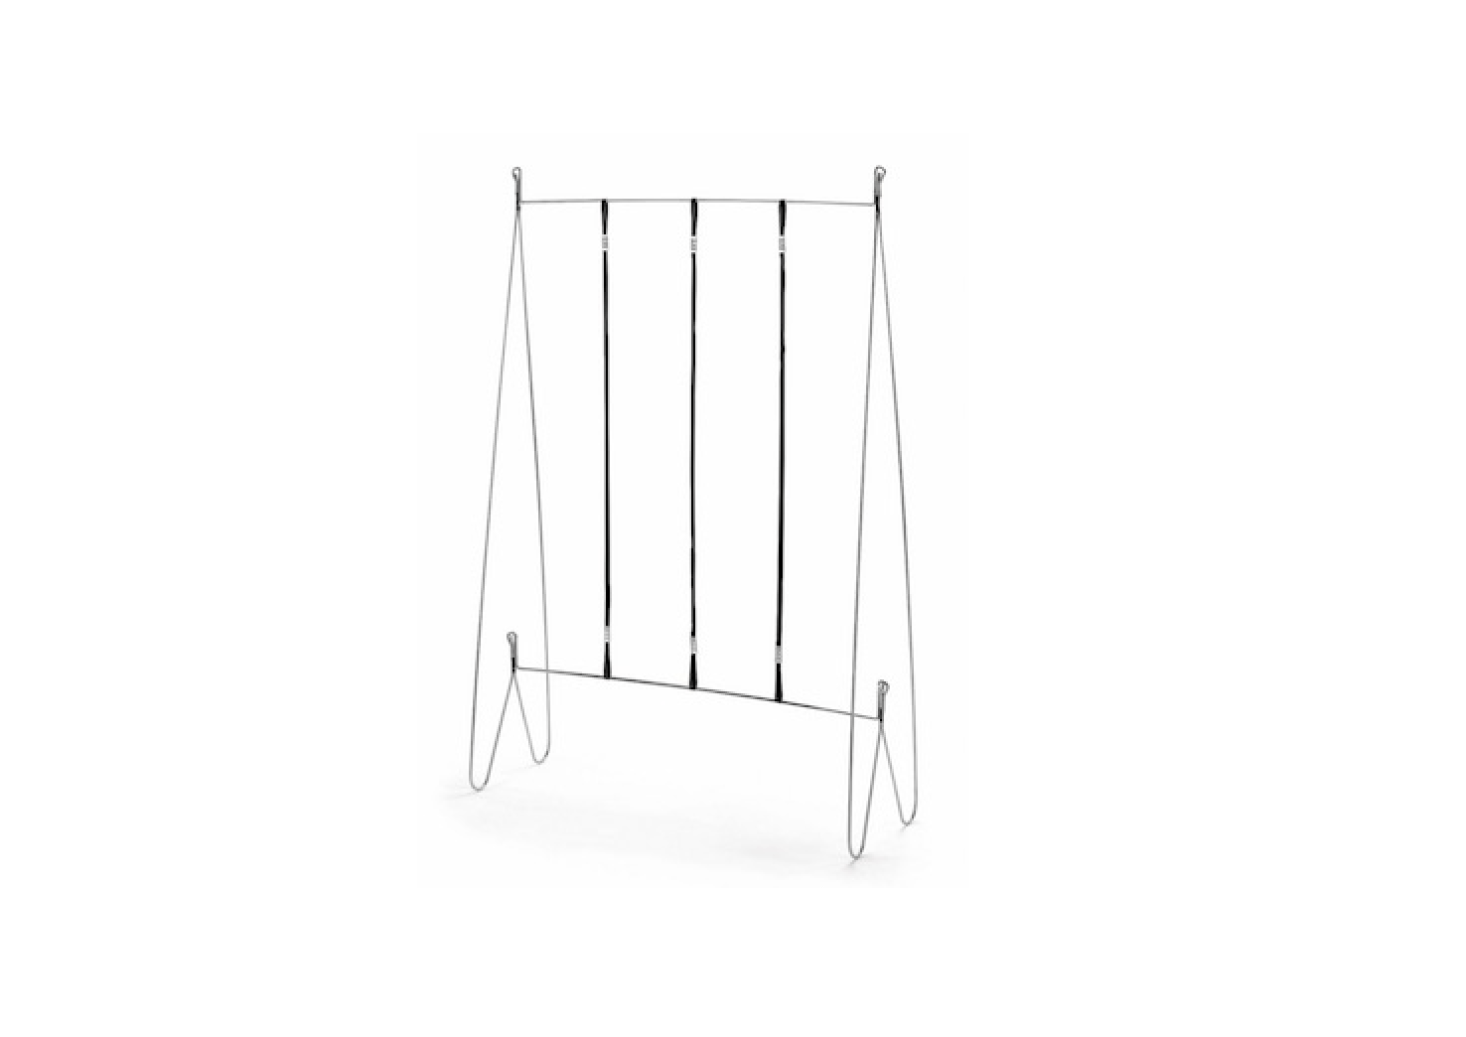 A steel frameTrellis designed for growing container tomatoes on a balcony or in a small space has polypropylene cords for tomato vines to climb; €40. The trellis legs sit inside a window box or soft growing sack (a blackCotton Soil Sack Cover is sold separately for €35); both are available from Manufactum.